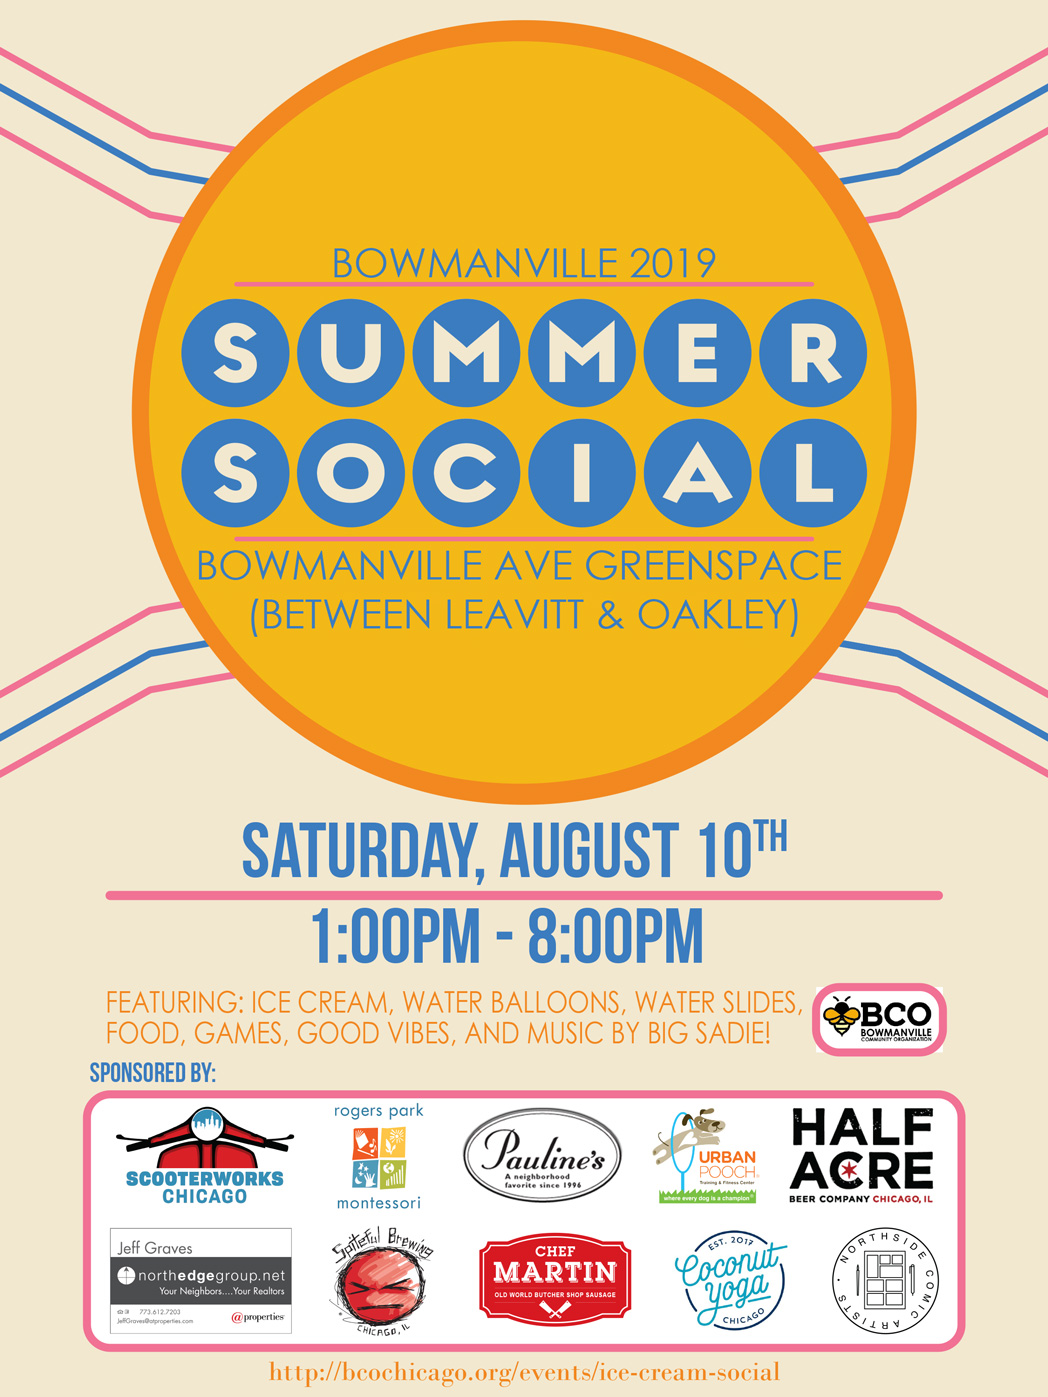 Bowmanville Summer Social 2019 - logo with date - Saturday August 10th 2019